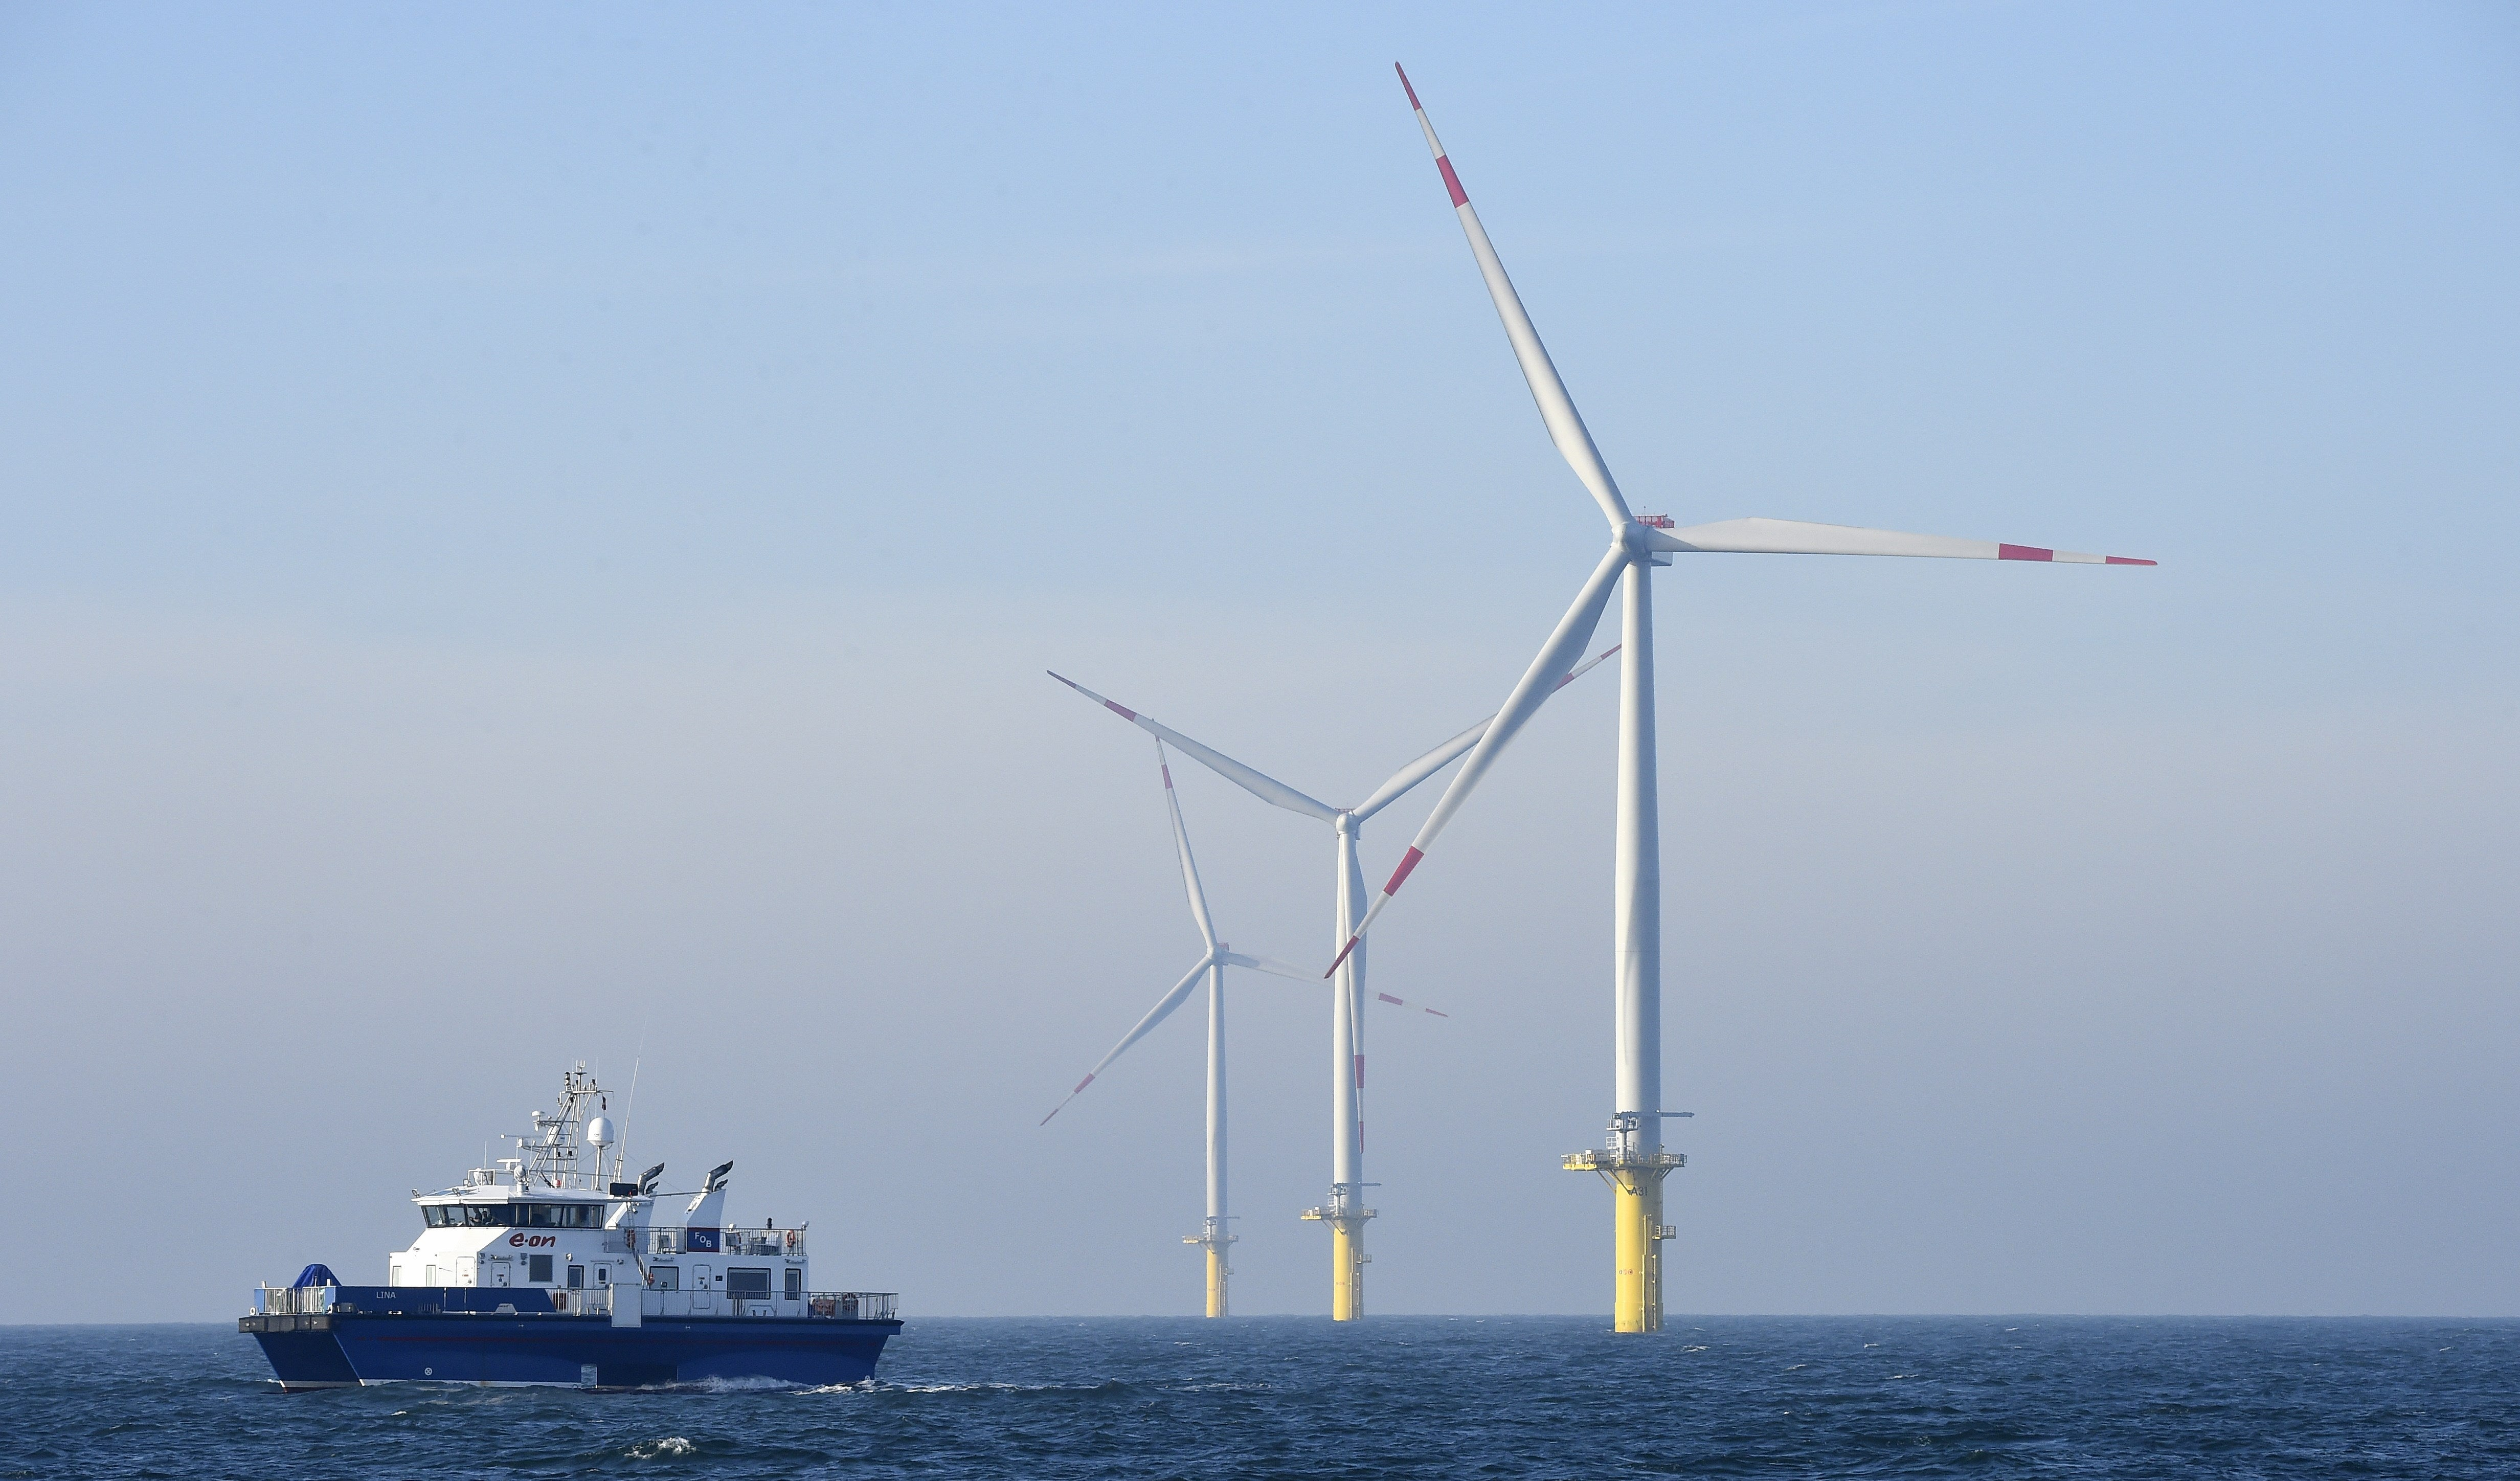 What Do Offshore Wind Farms Mean For The Oceans?